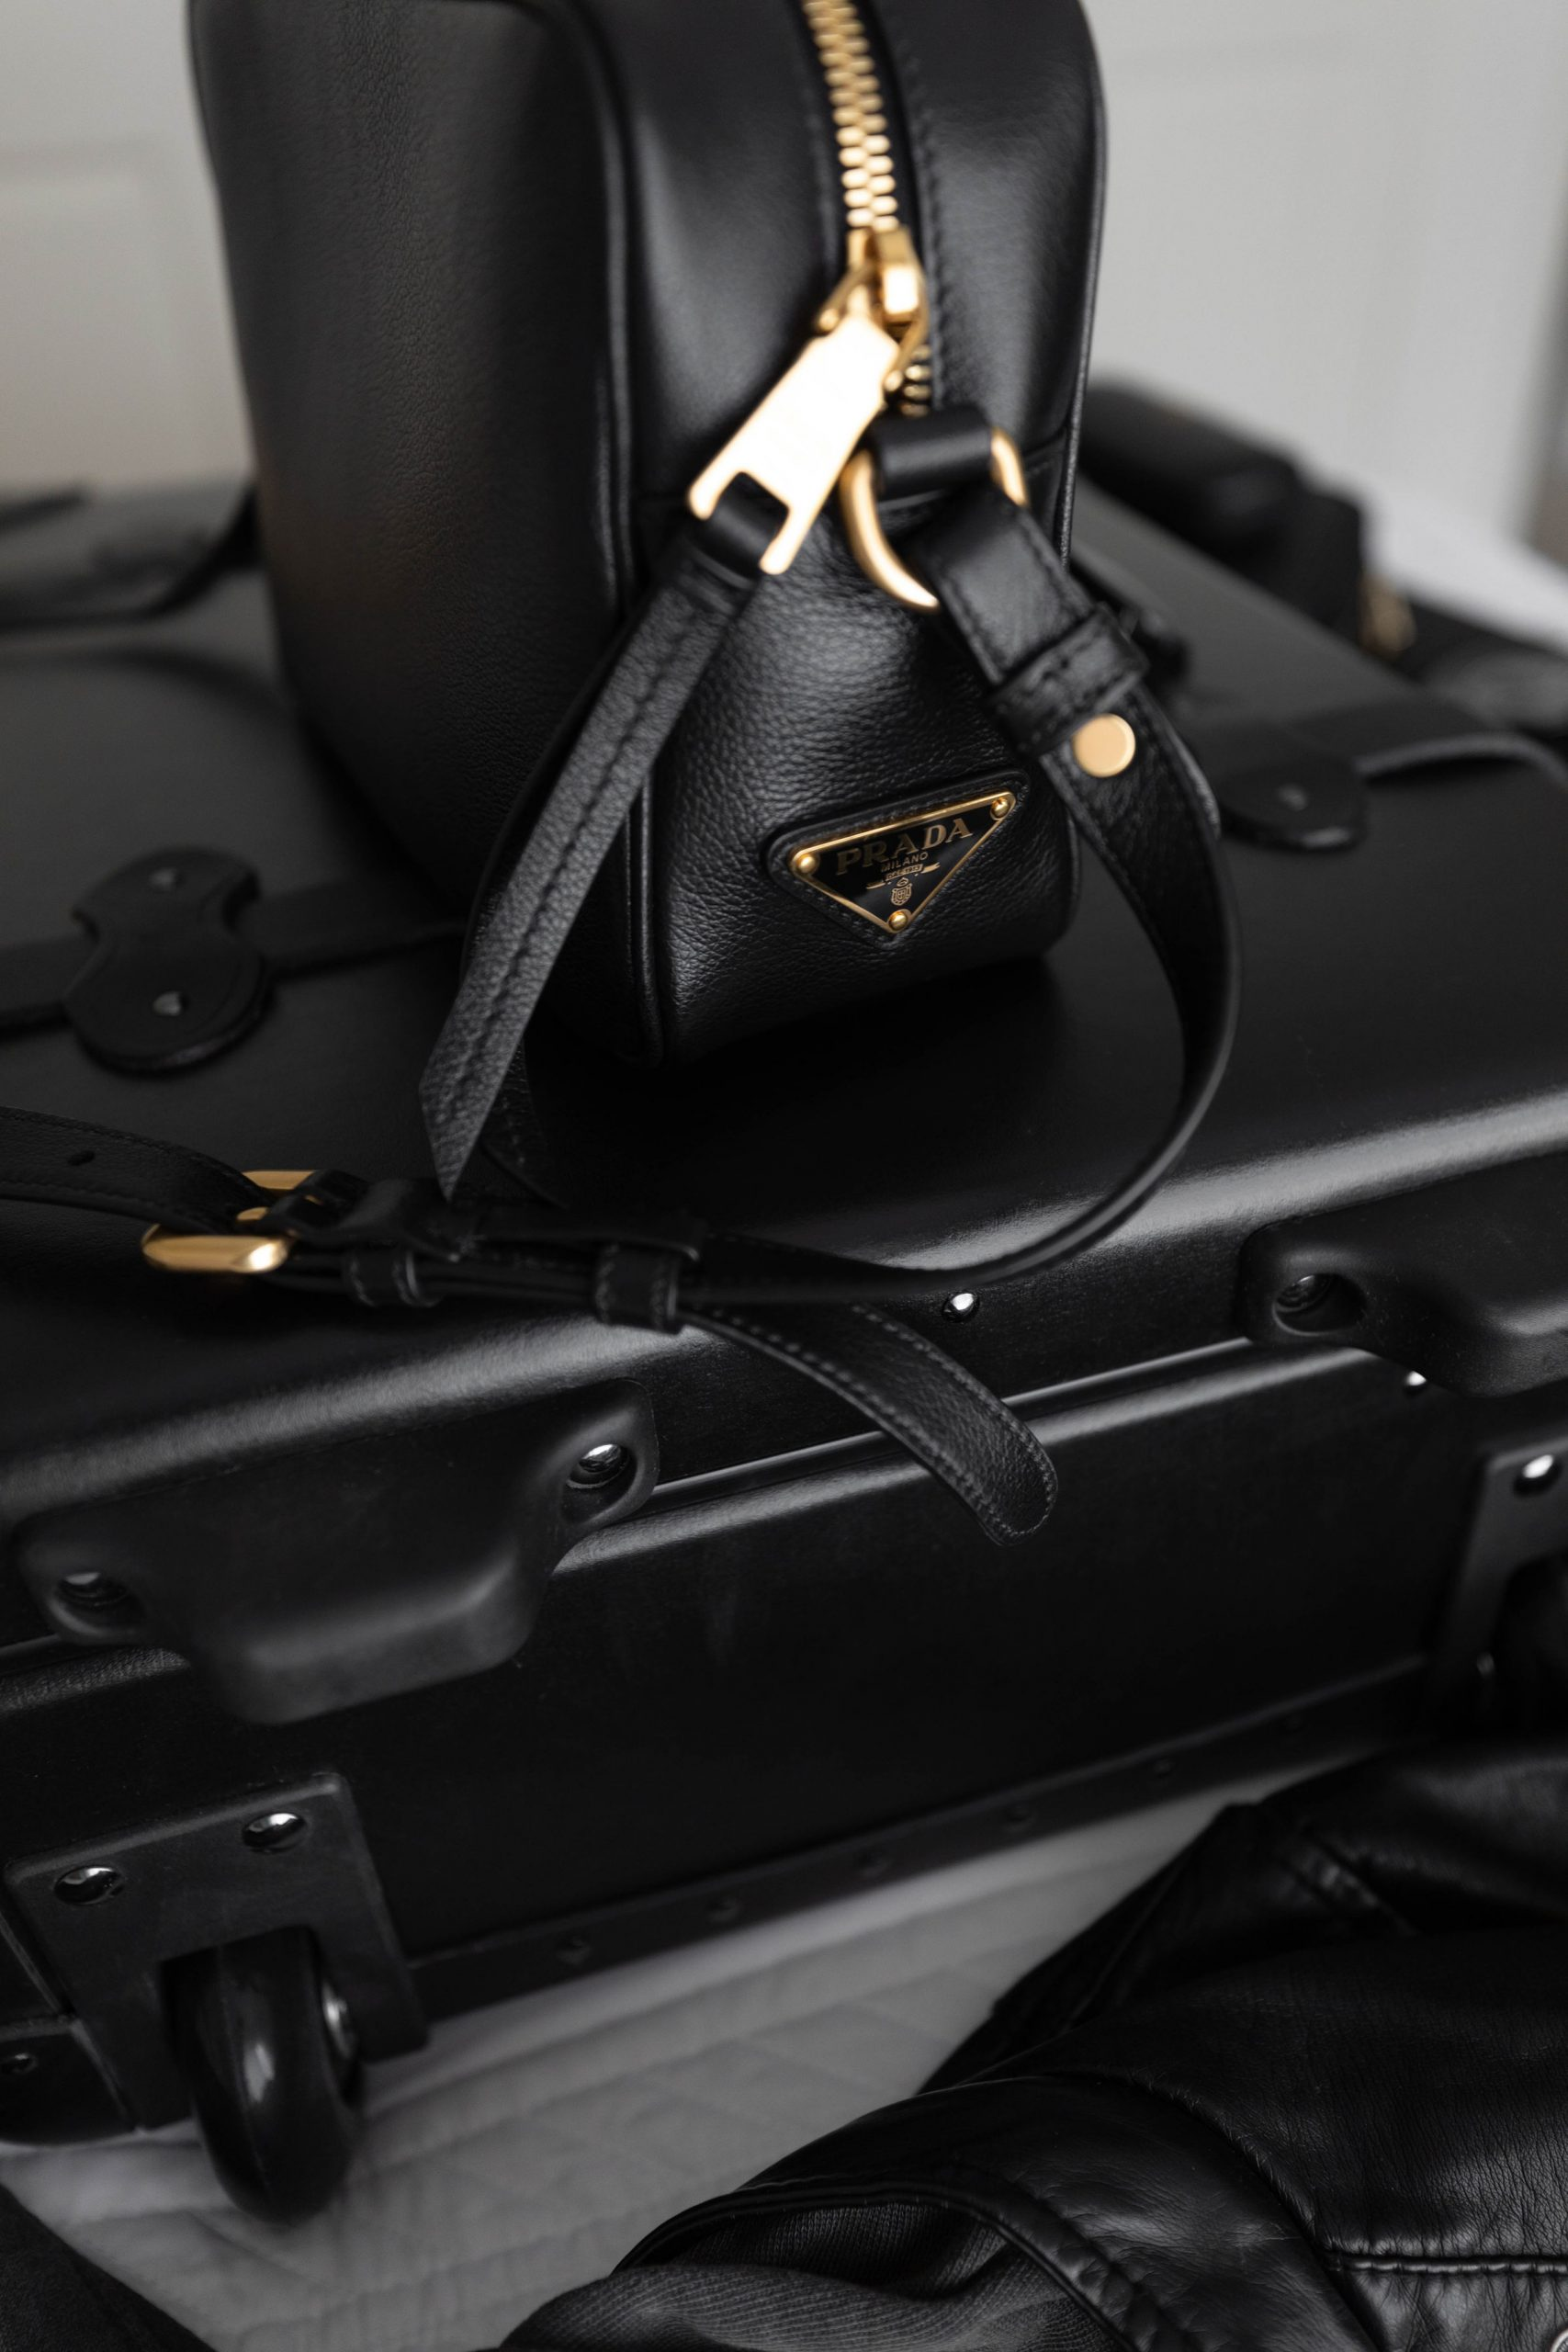 Black Industrialist Steamline Luggage Carry-on Suitcase Leather Sophisticated Travel by Annie Fairfax